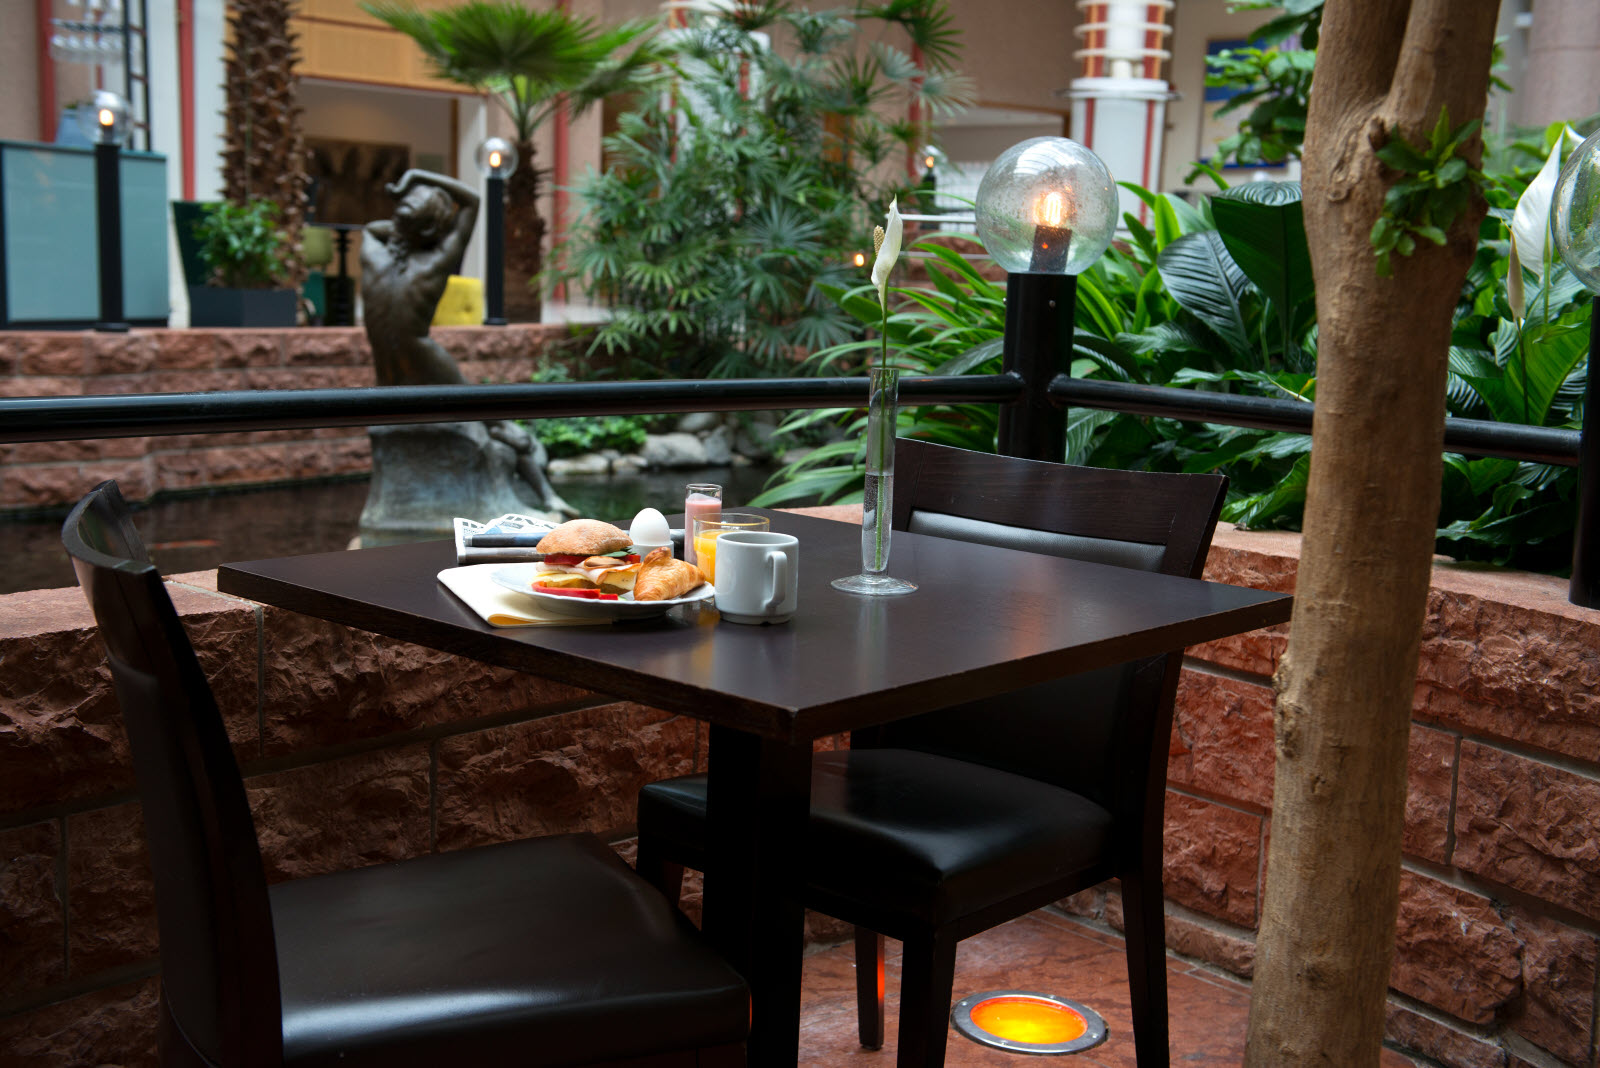 Infra-Upplands-vasby-Restaurant-Breakfast.jpg